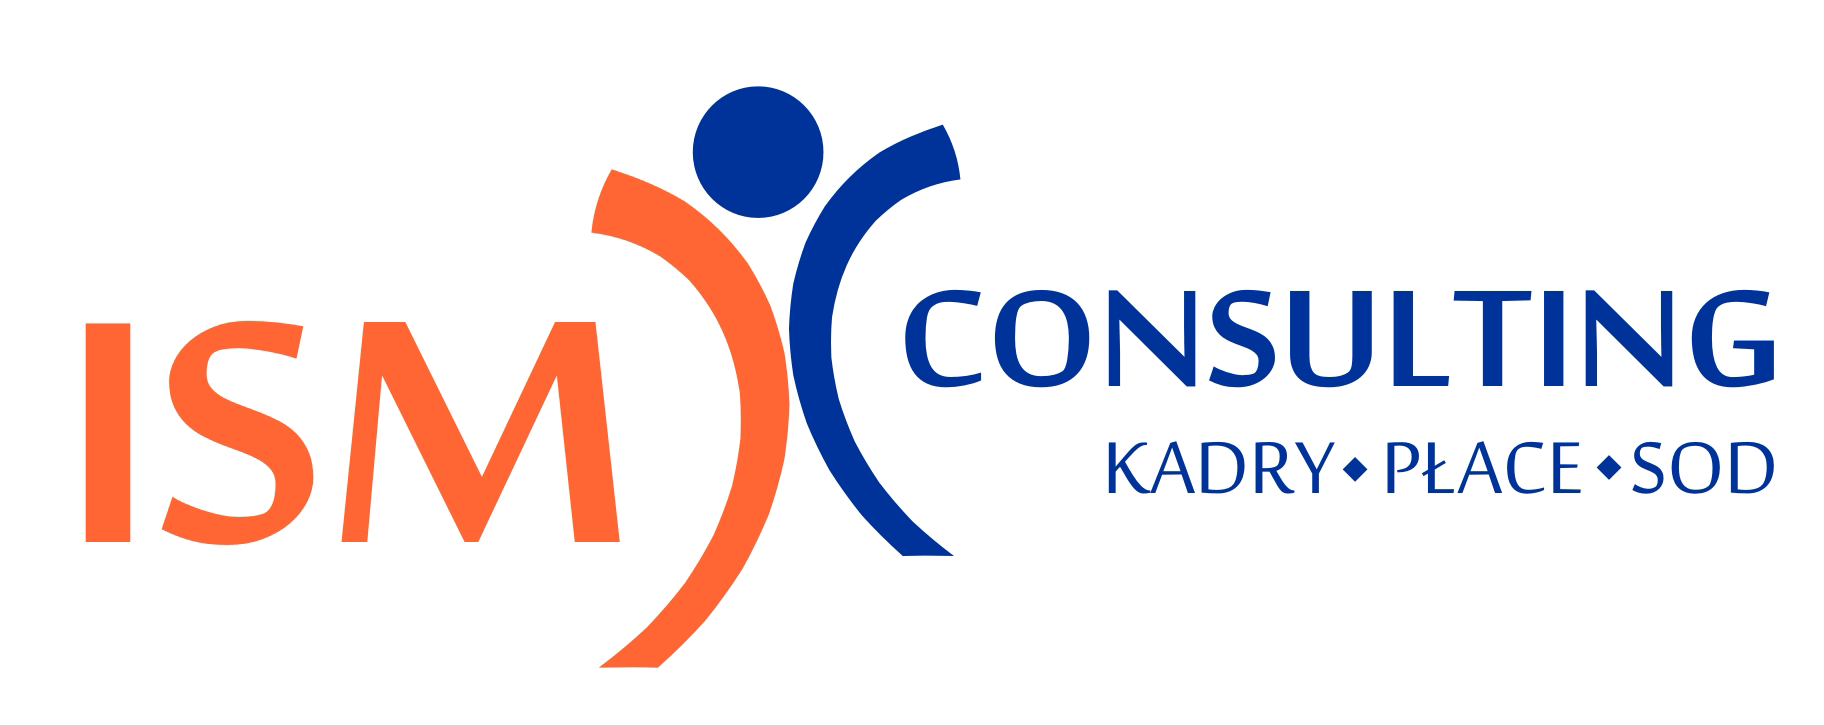 ism consulting - logo